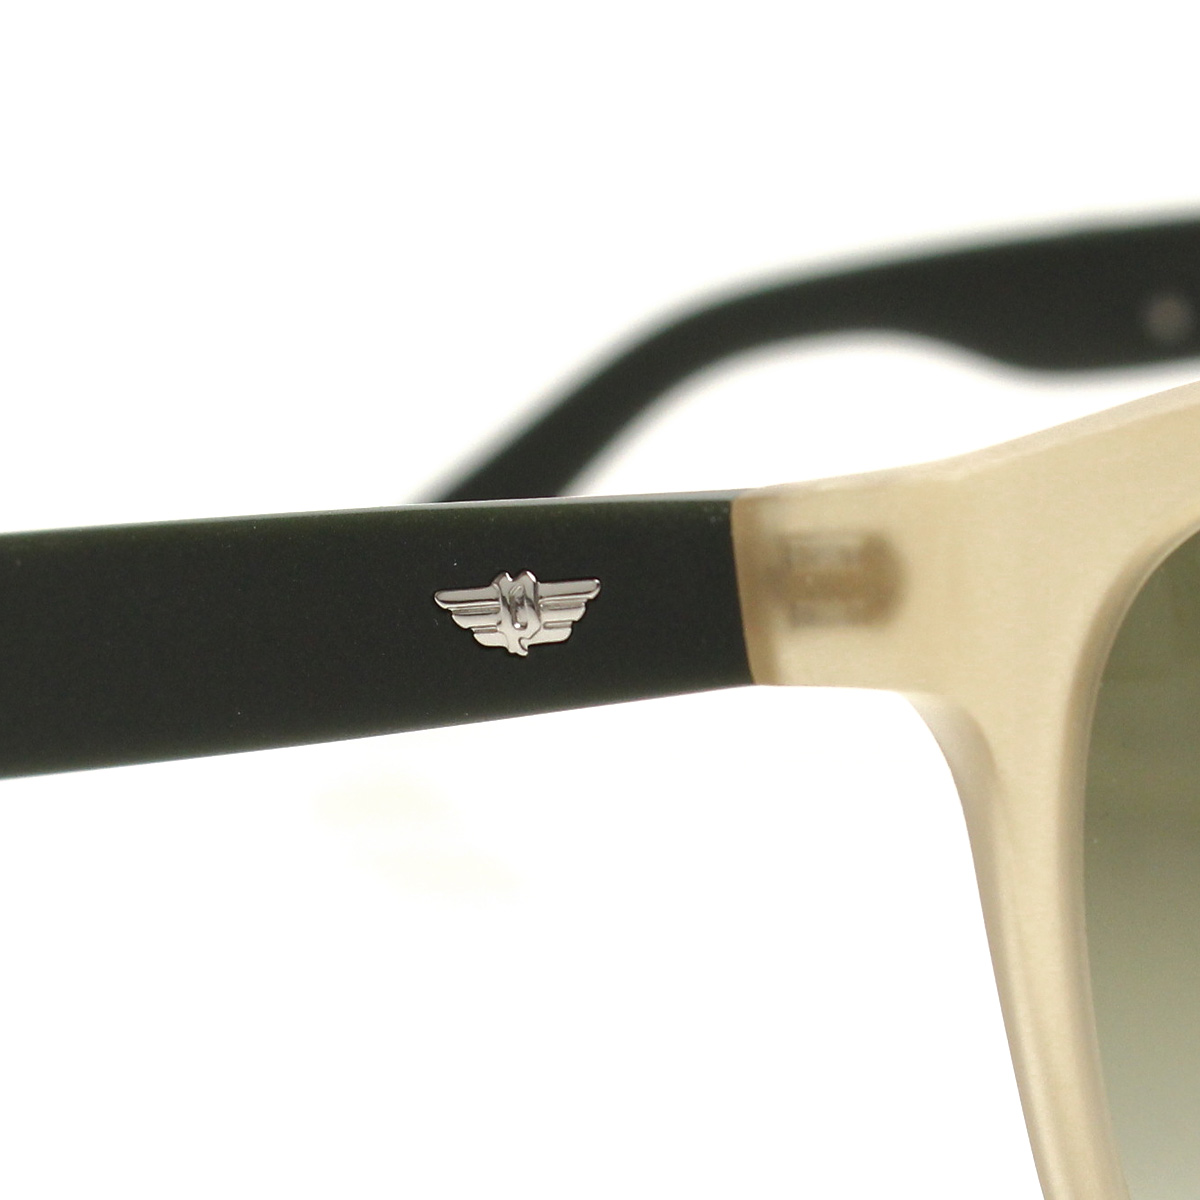 Polis (POLICE) sunglasses S1859G-858M clear beige( taxfree/send by EMS/authentic/A brand new item )